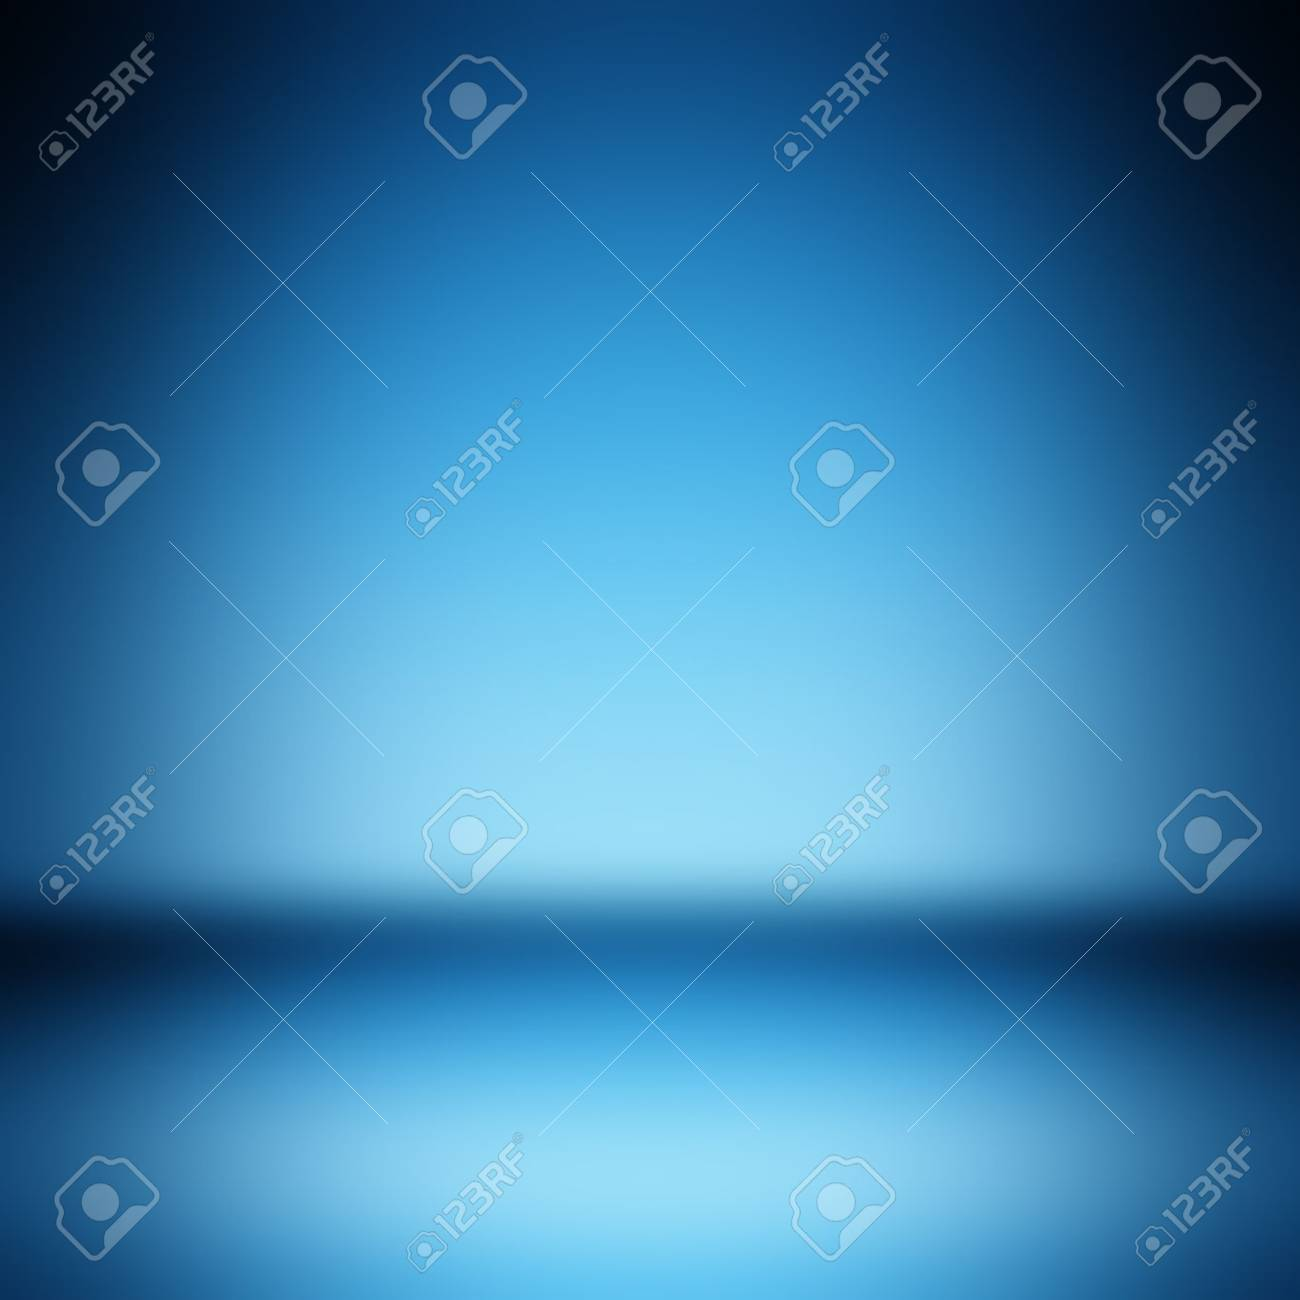 Light blue gradient abstract background. Empty room for display product - 62306009